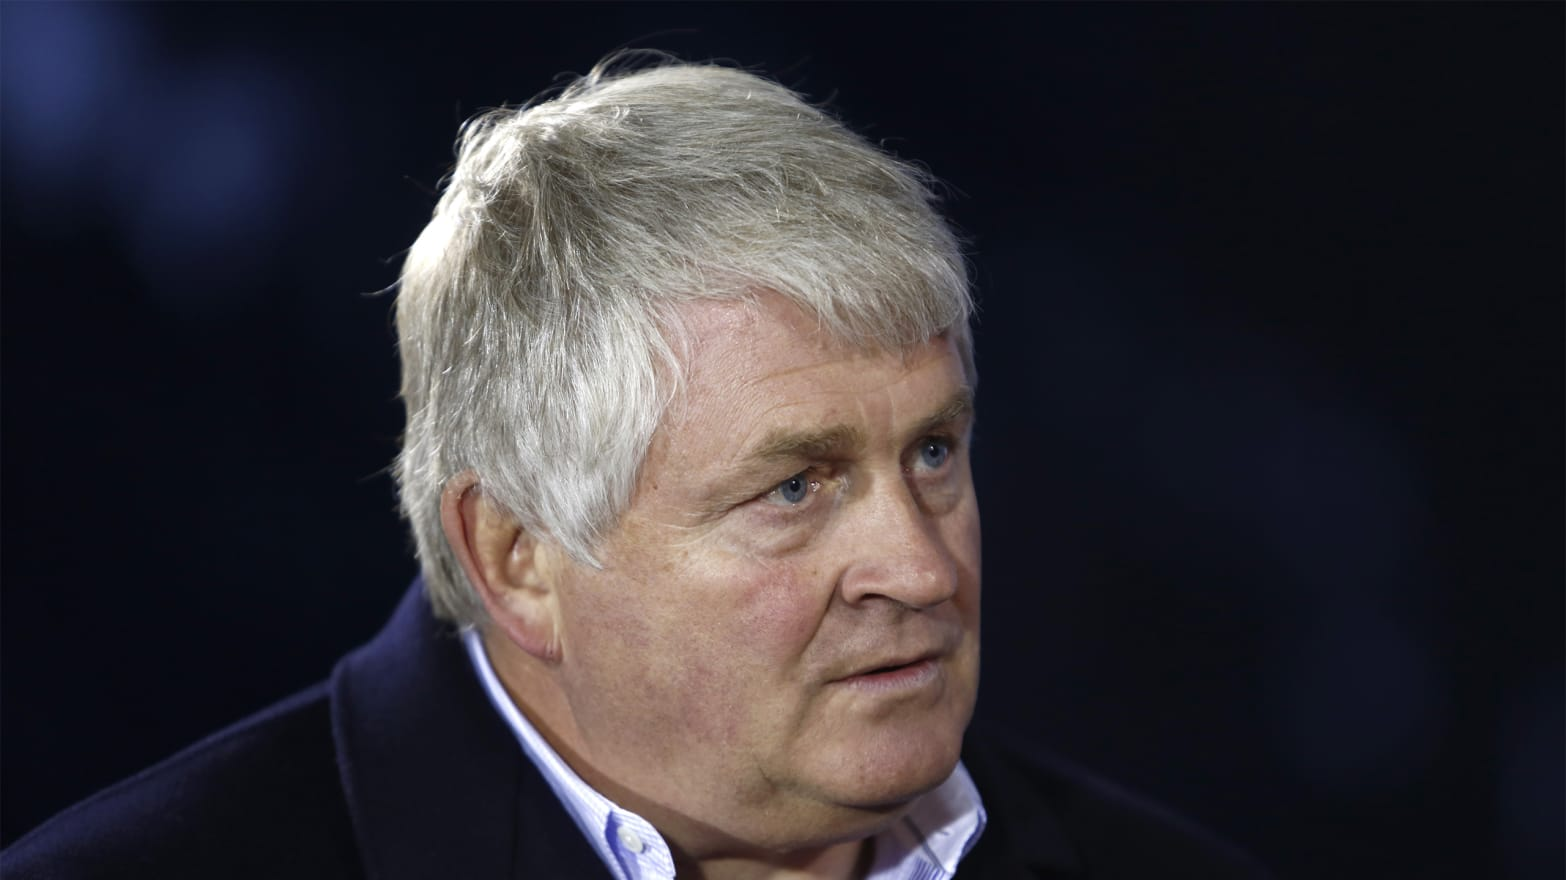 Why Is The Irish Government Scared of Billionaire Denis O'Brien?